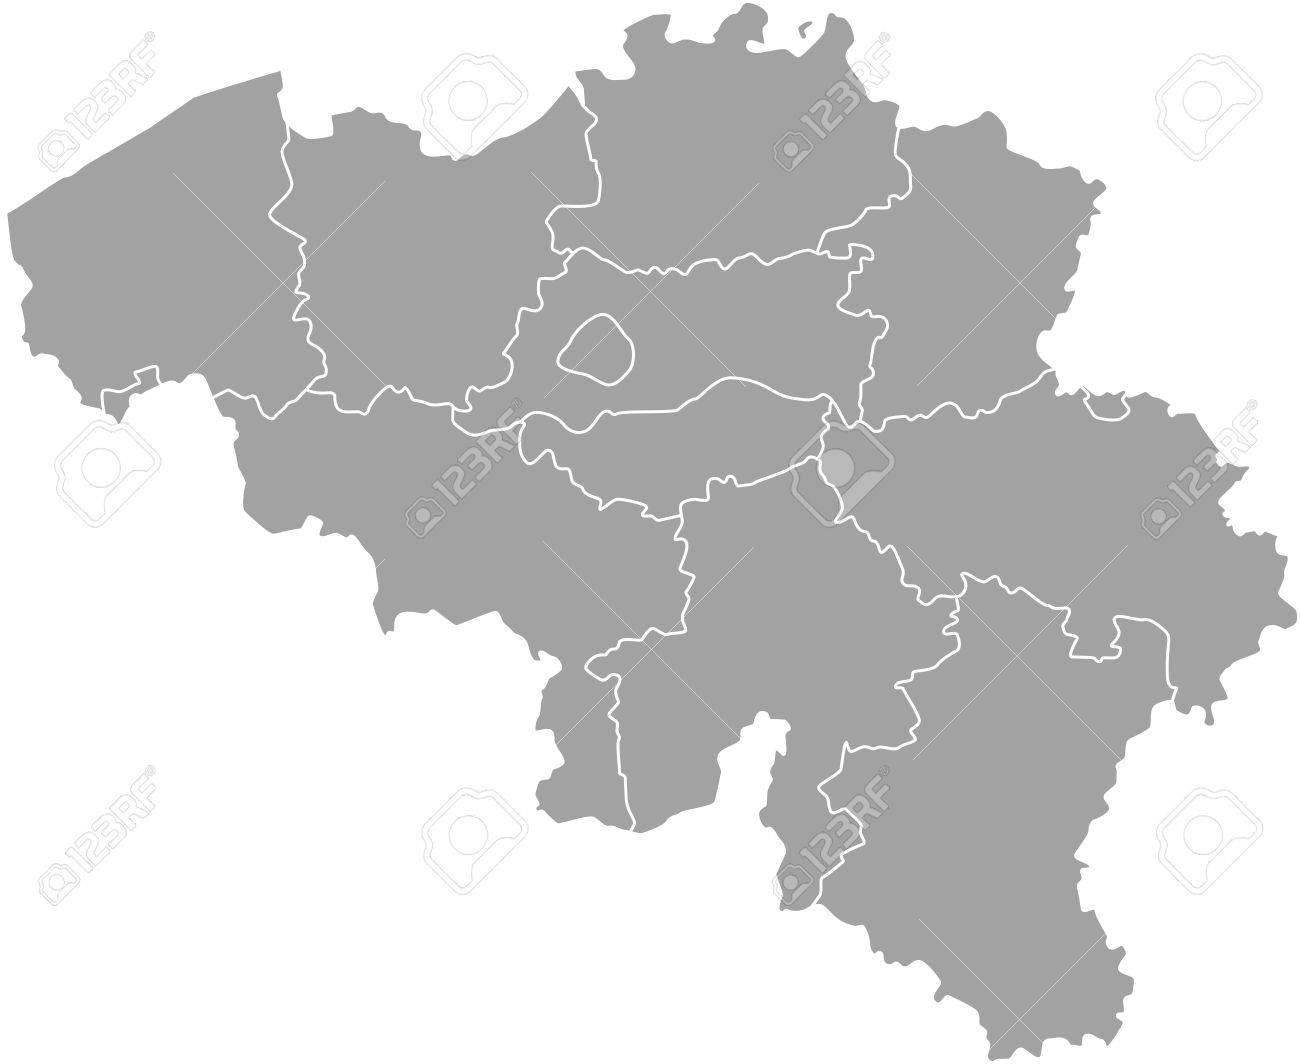 Belgium Map Outline With Borders Of Provinces Or States Royalty Free     Belgium map outline with borders of provinces or states Stock Vector    50920094